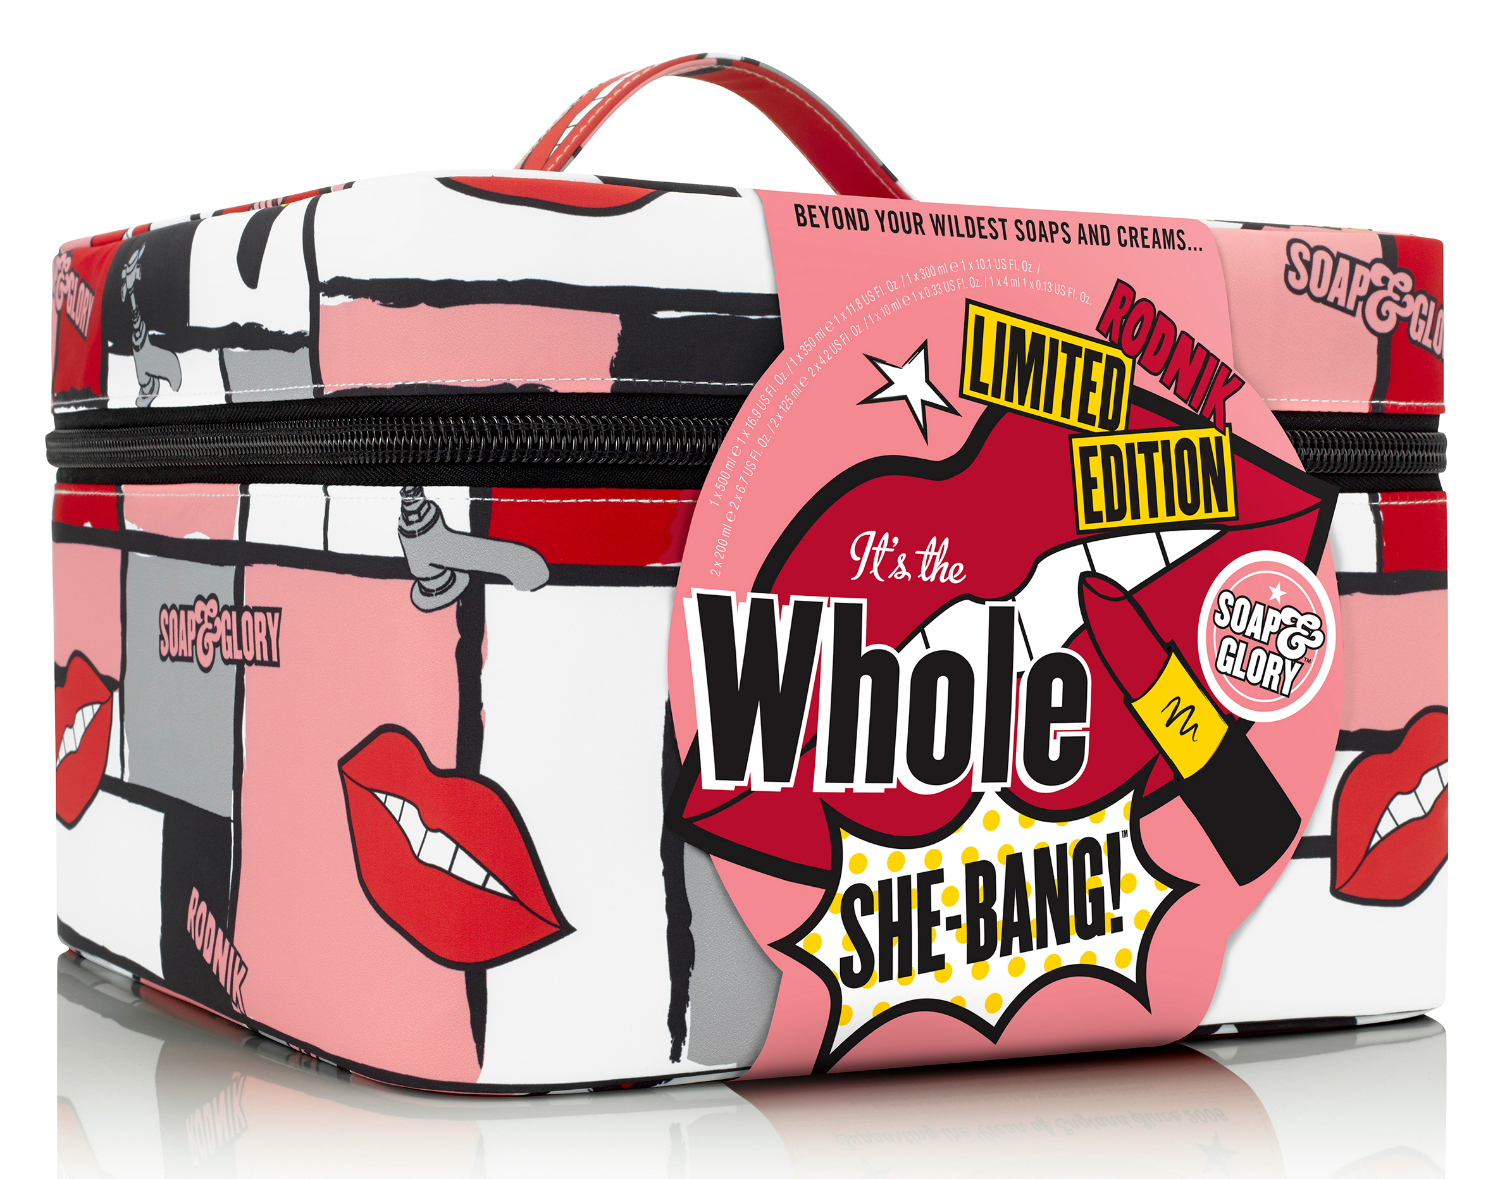 Soap & Glory Whole She-Bang 2015 Star gift